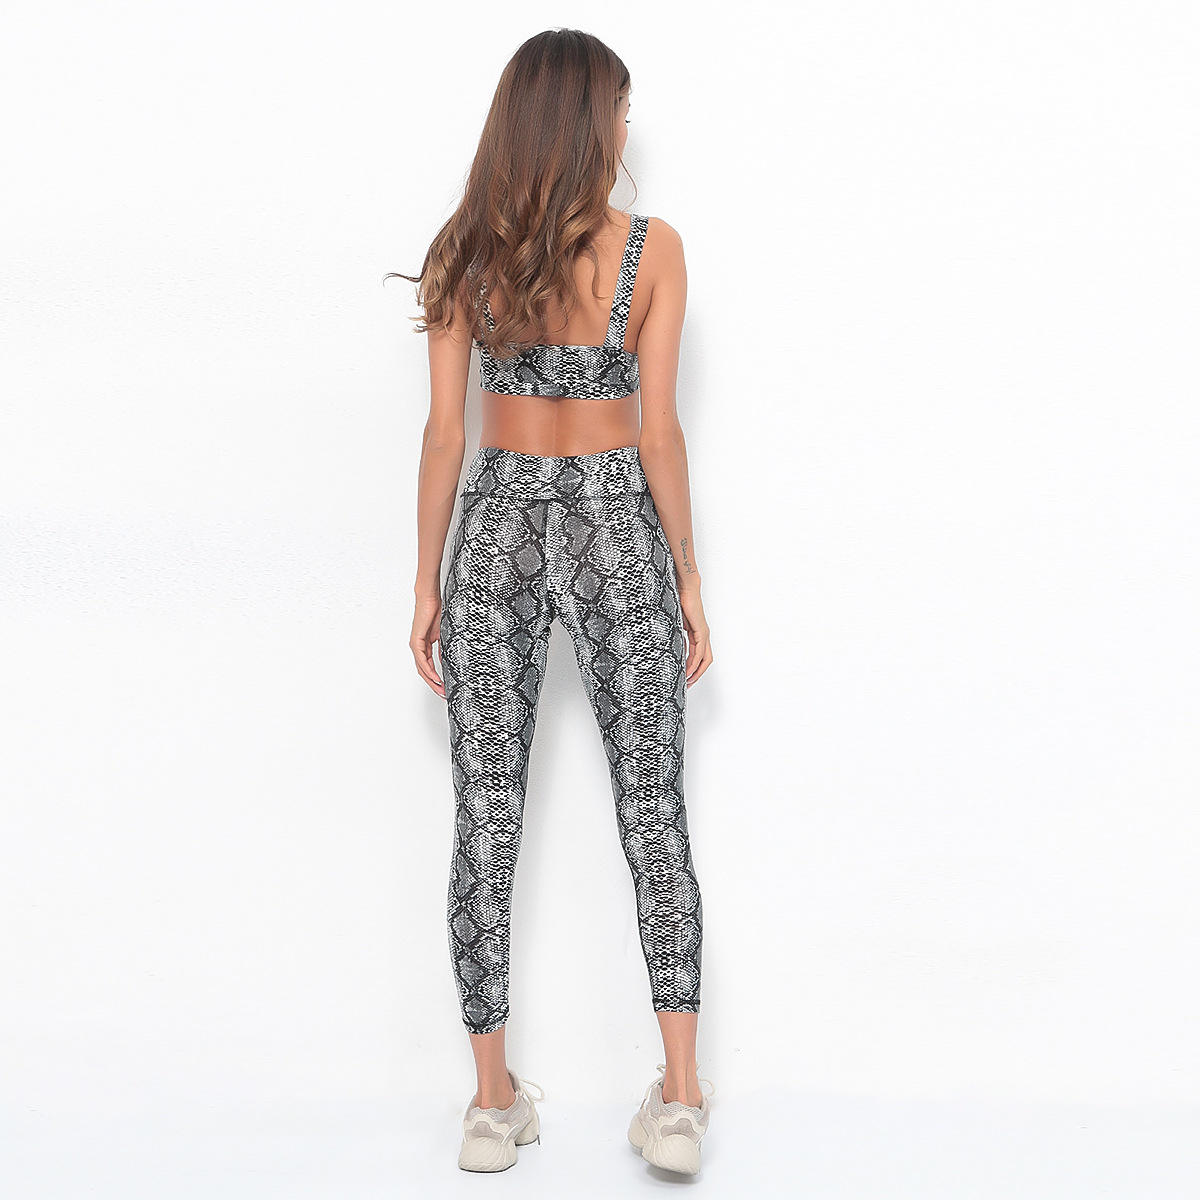 sale items summer clothes 2019 casual woman tracksuit 2 pieces sets outfits snake print jogging femme crop top and pants set in Women 39 s Sets from Women 39 s Clothing